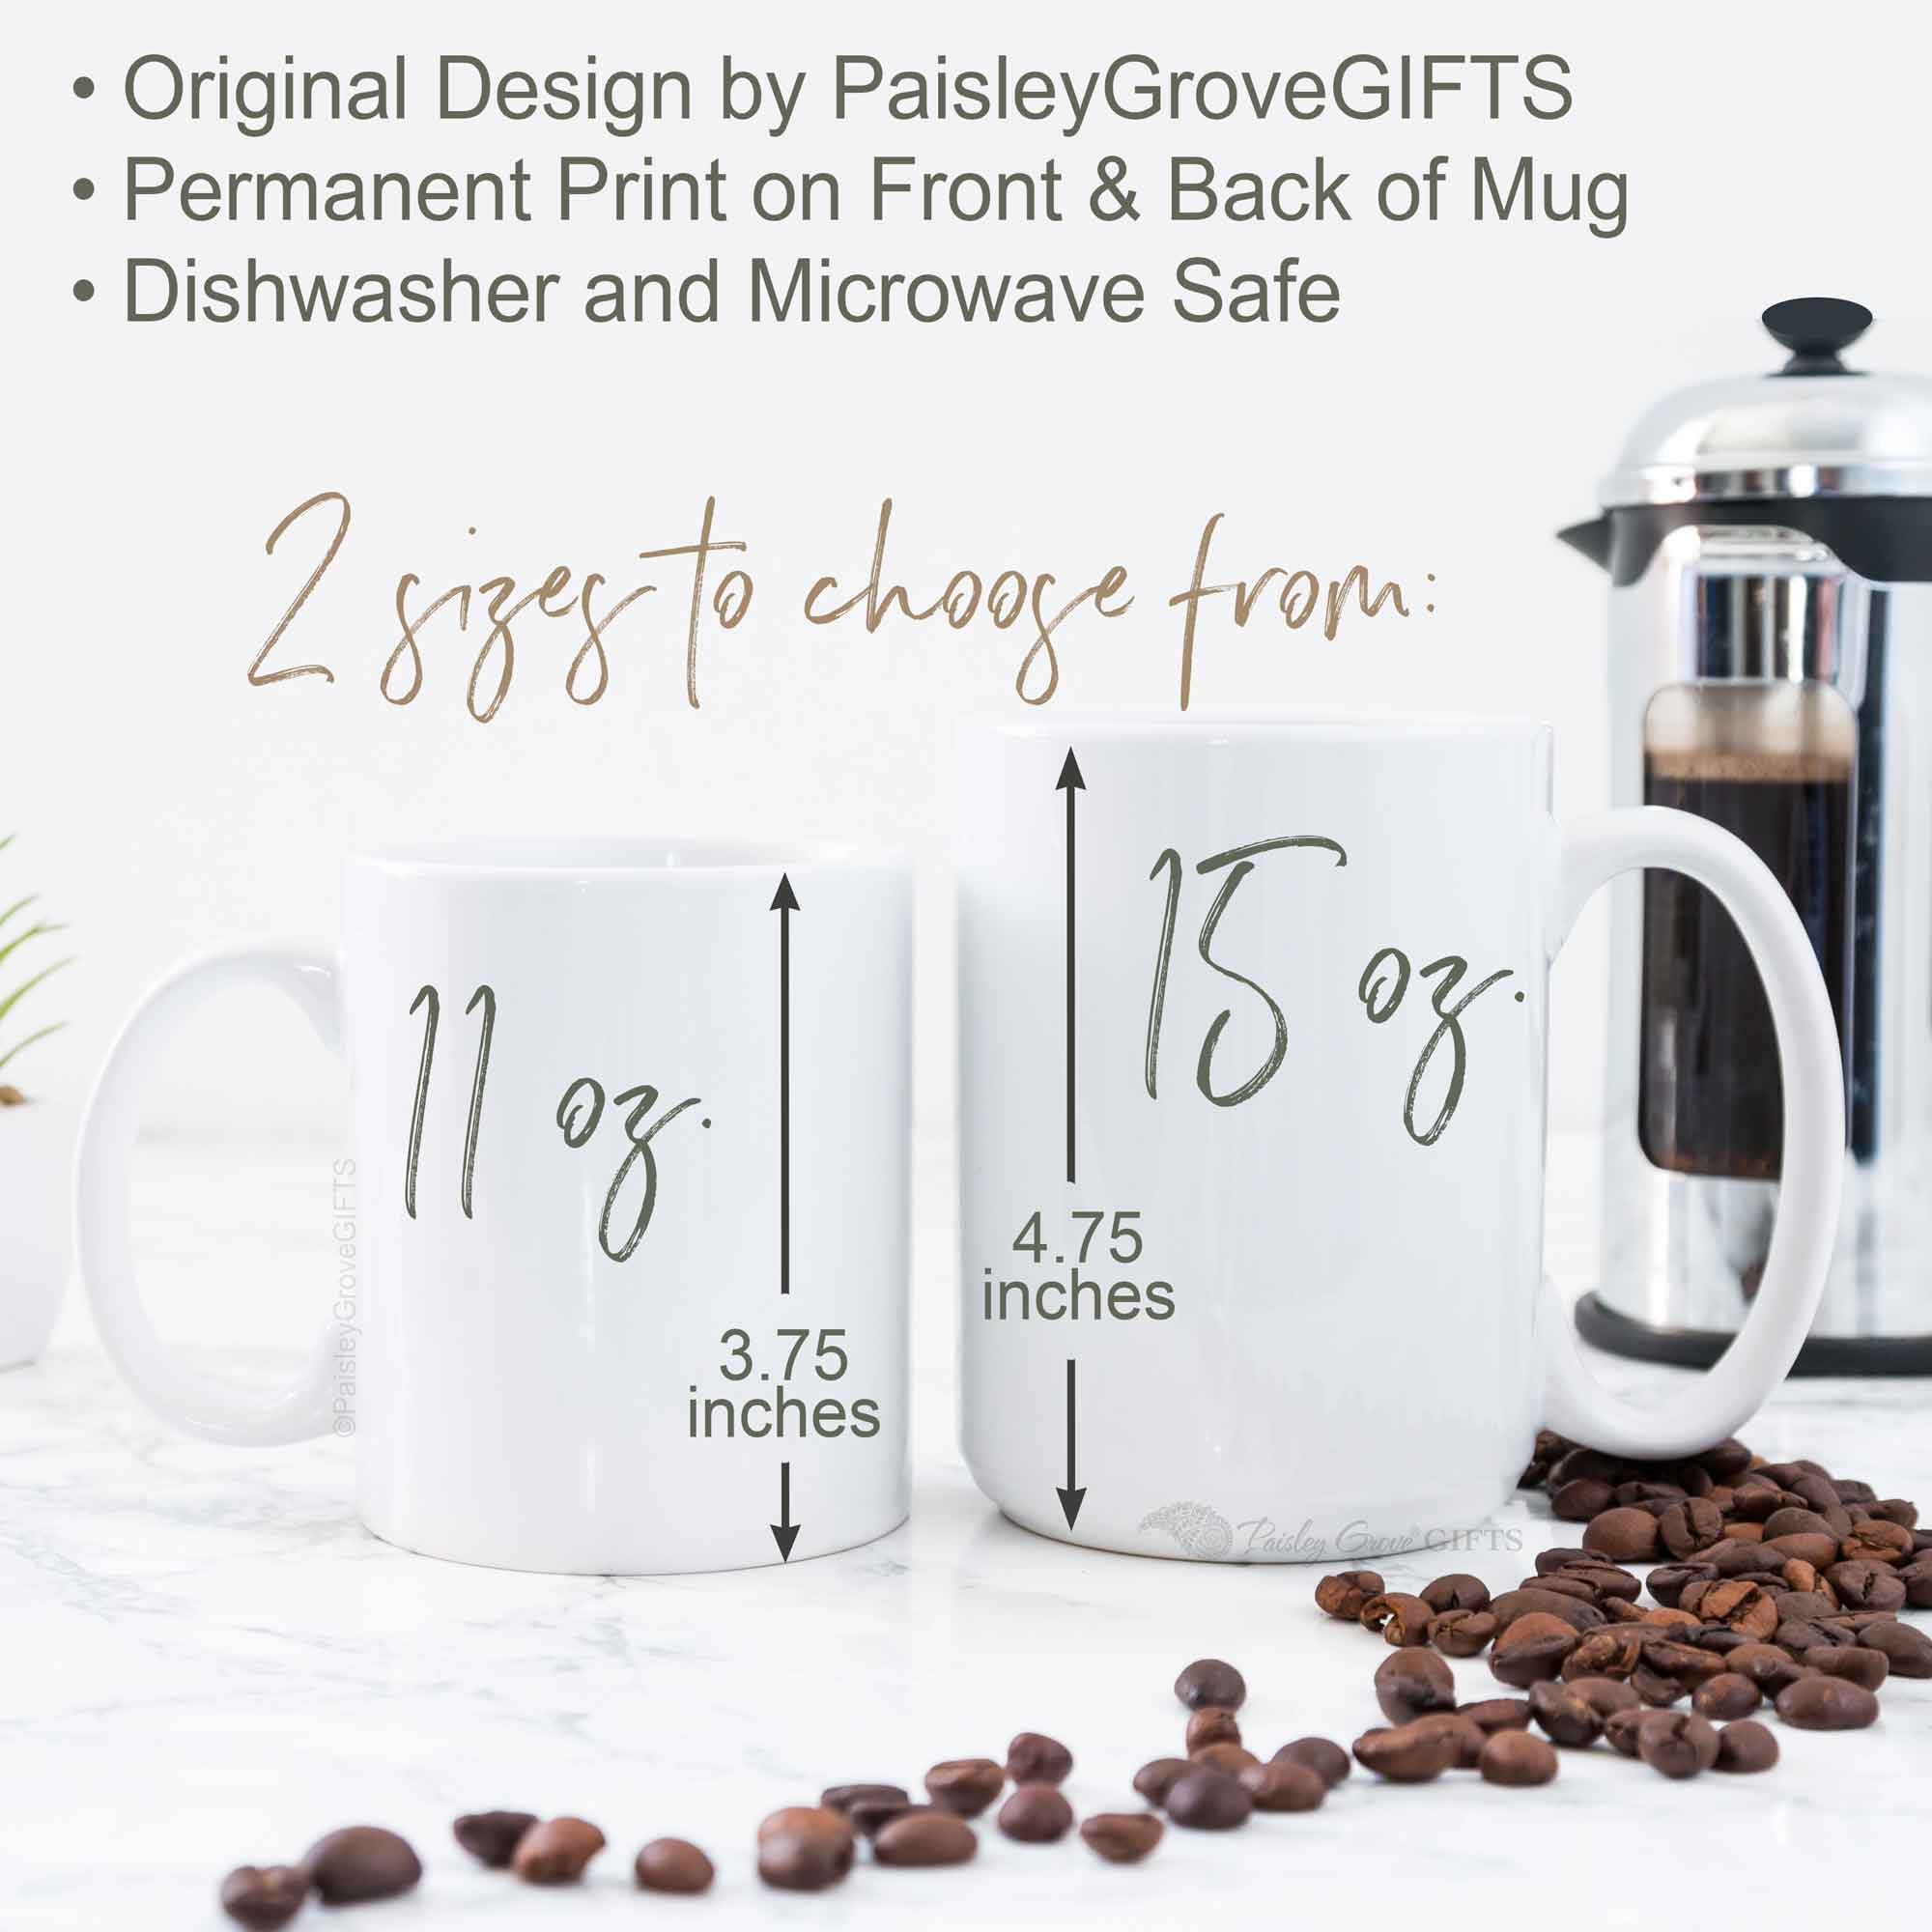 CopyrightPaisleyGroveGIFTS P001g 11 or 15 oz available Homeschool Mom Retro Coffee Mugs